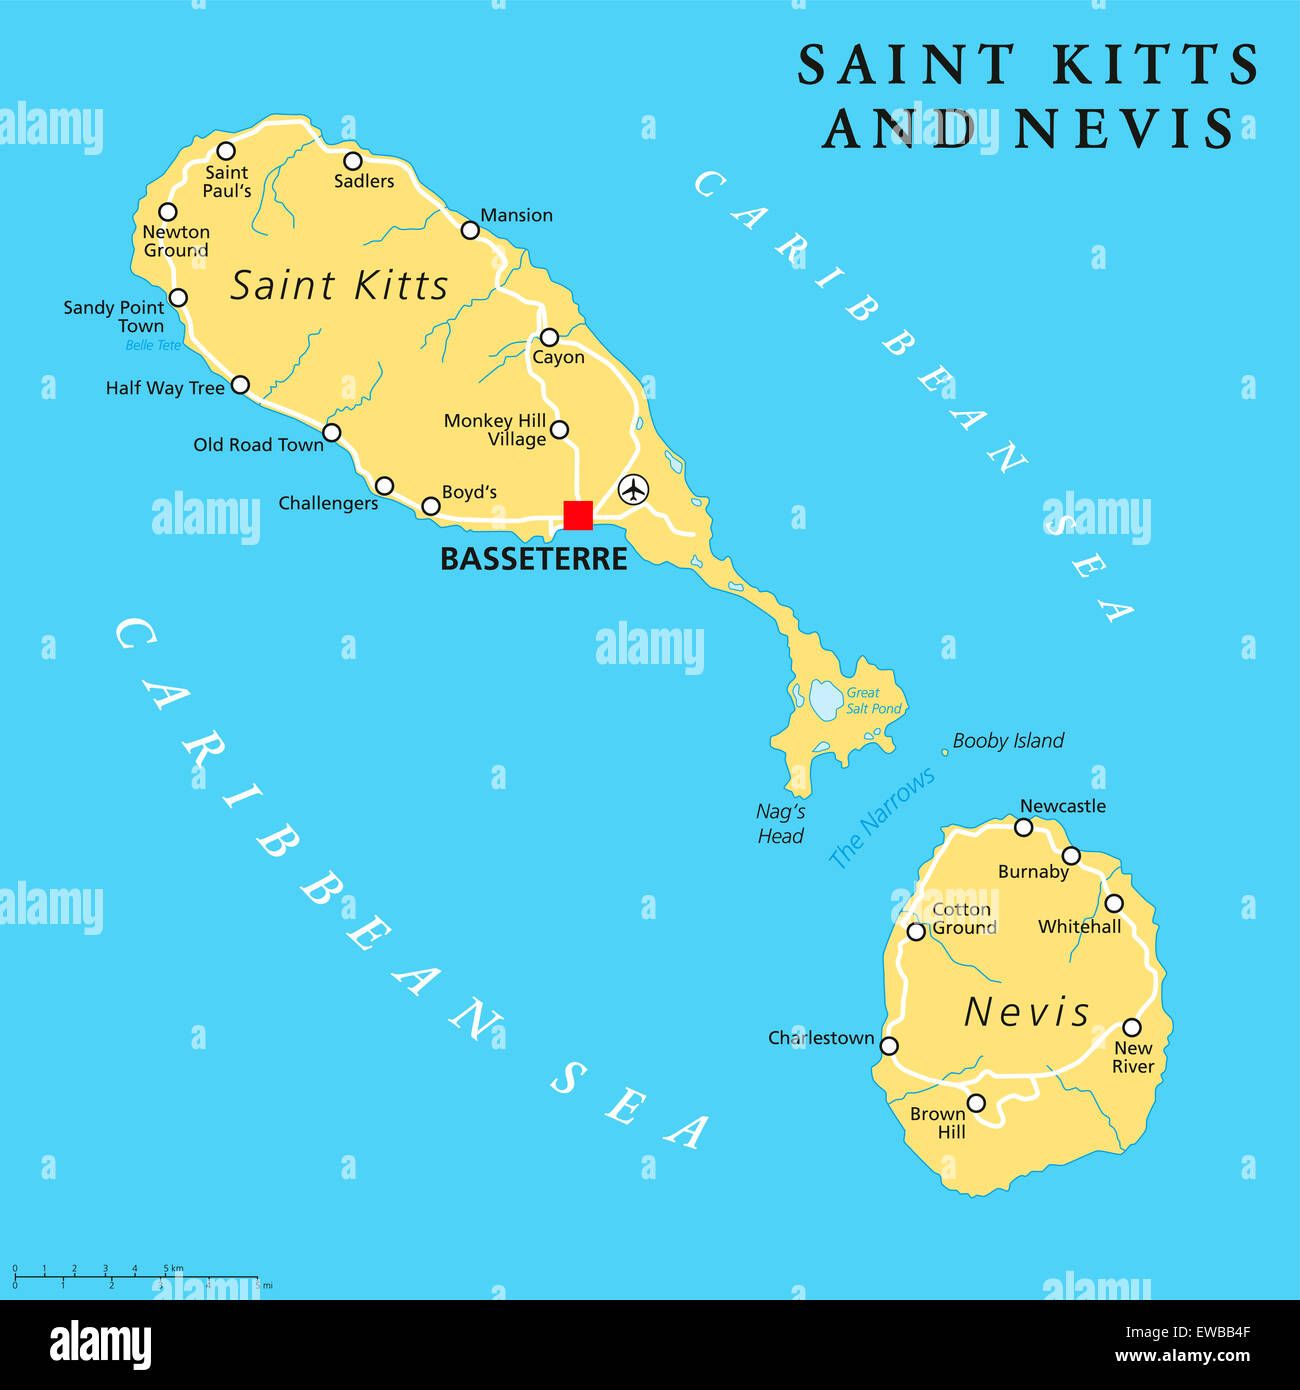 Saint Kitts And Nevis Stock Photos & Saint Kitts And Nevis Stock ...